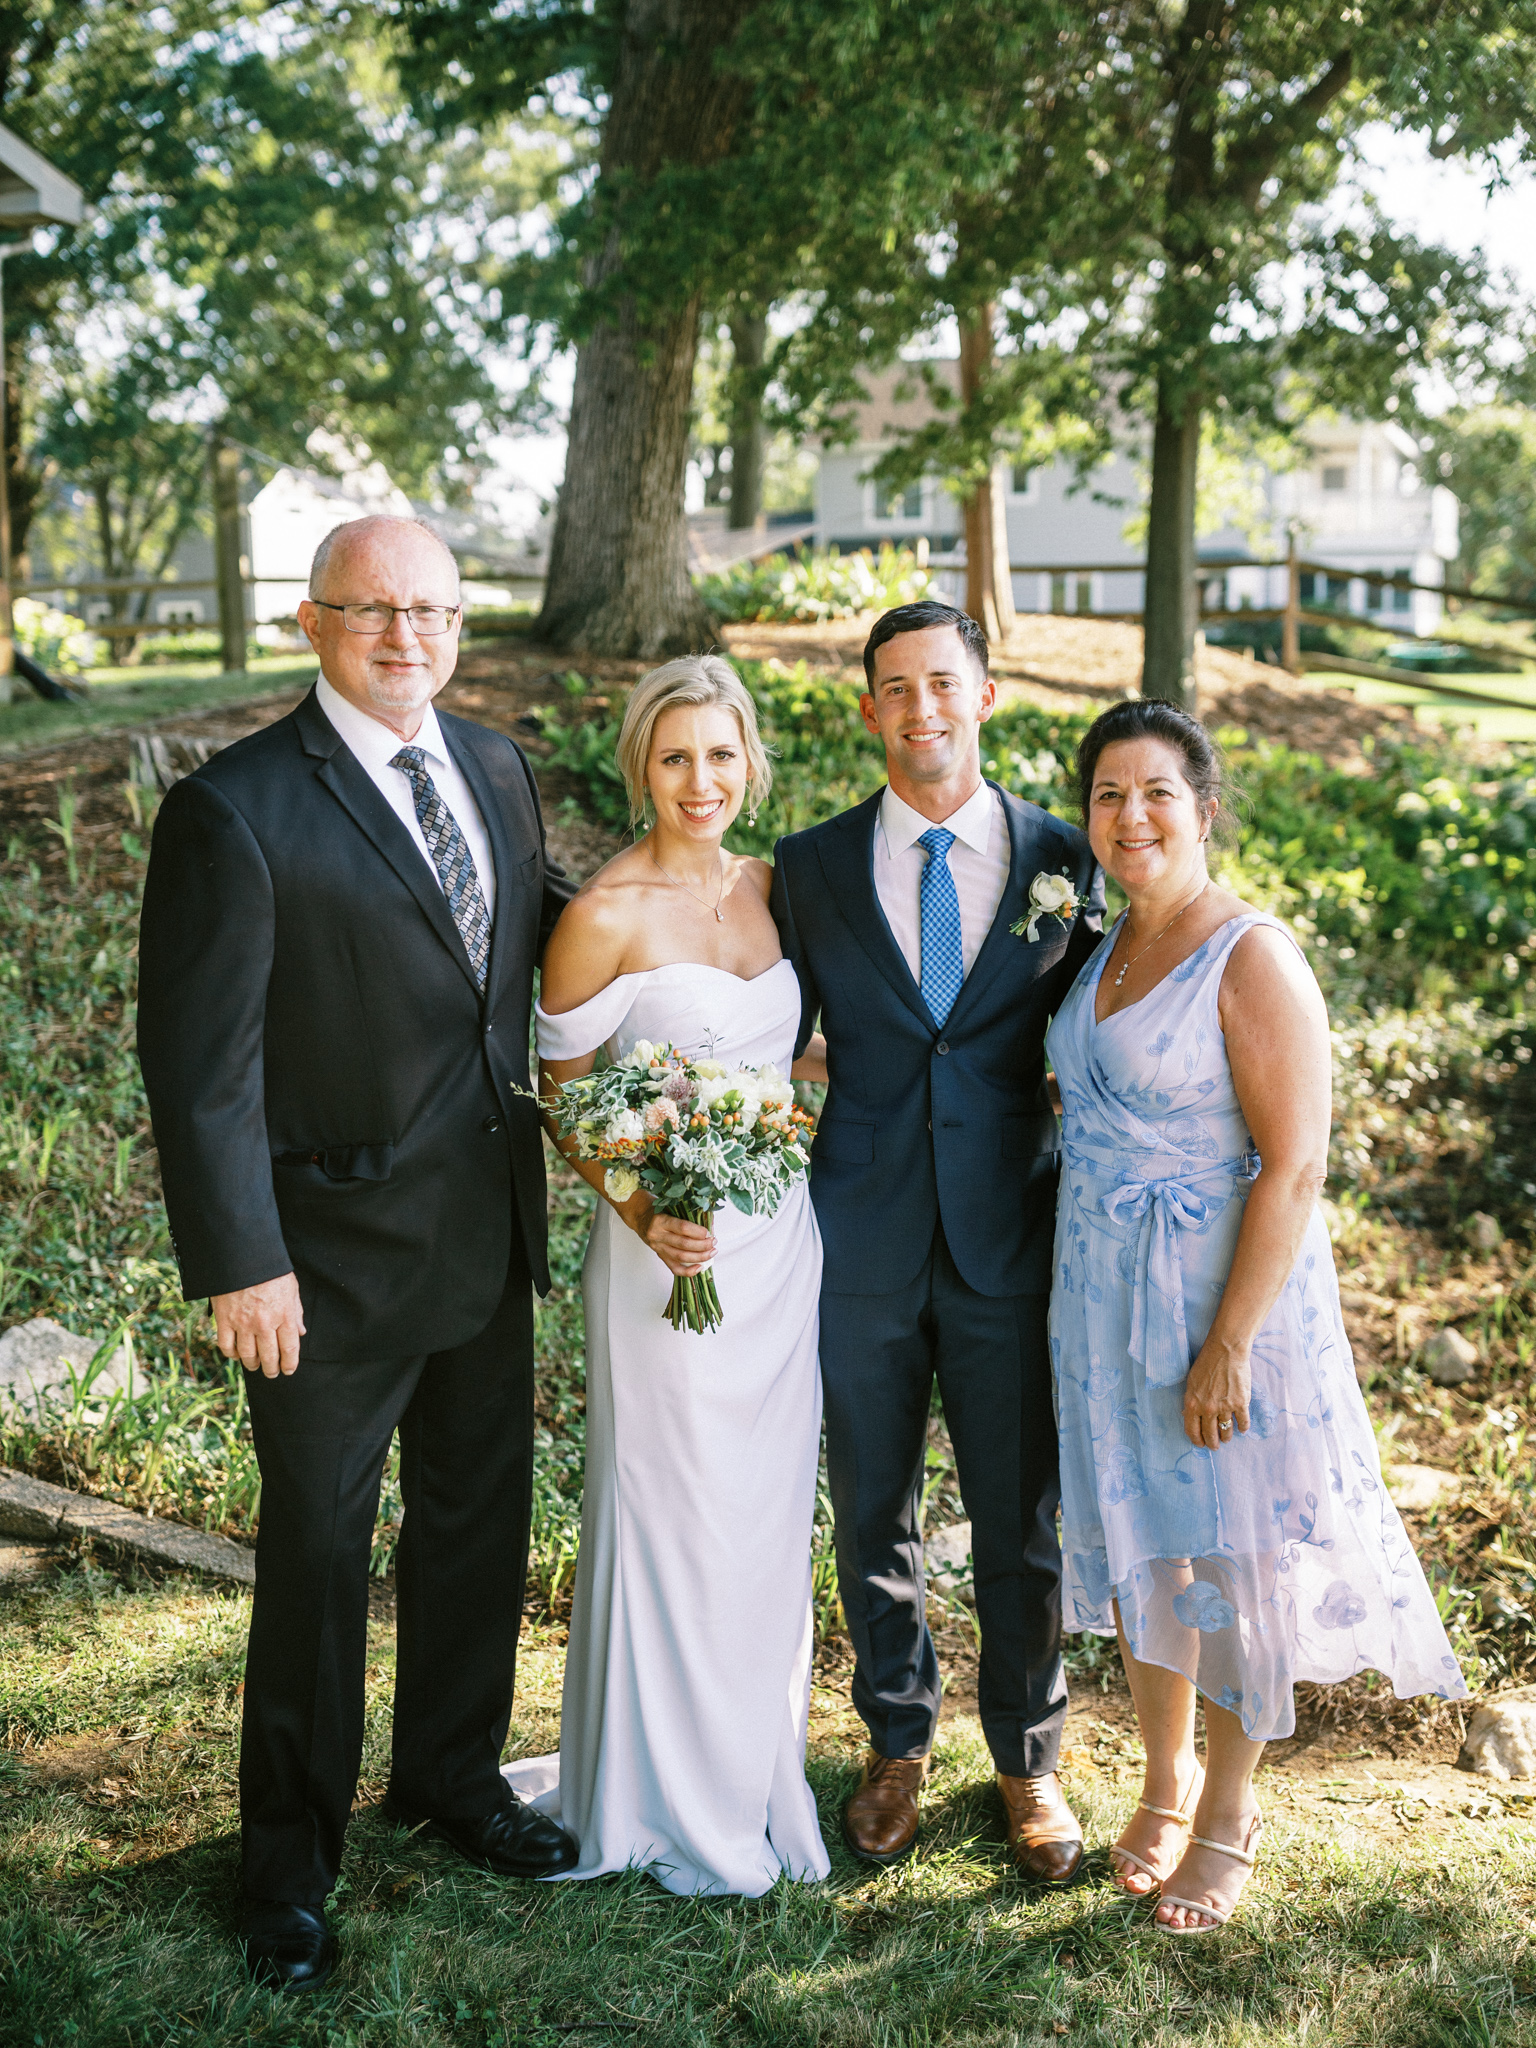 Gray_Joiner_e. losinio photography_annapolis-maryland-waterfront-elopement-221